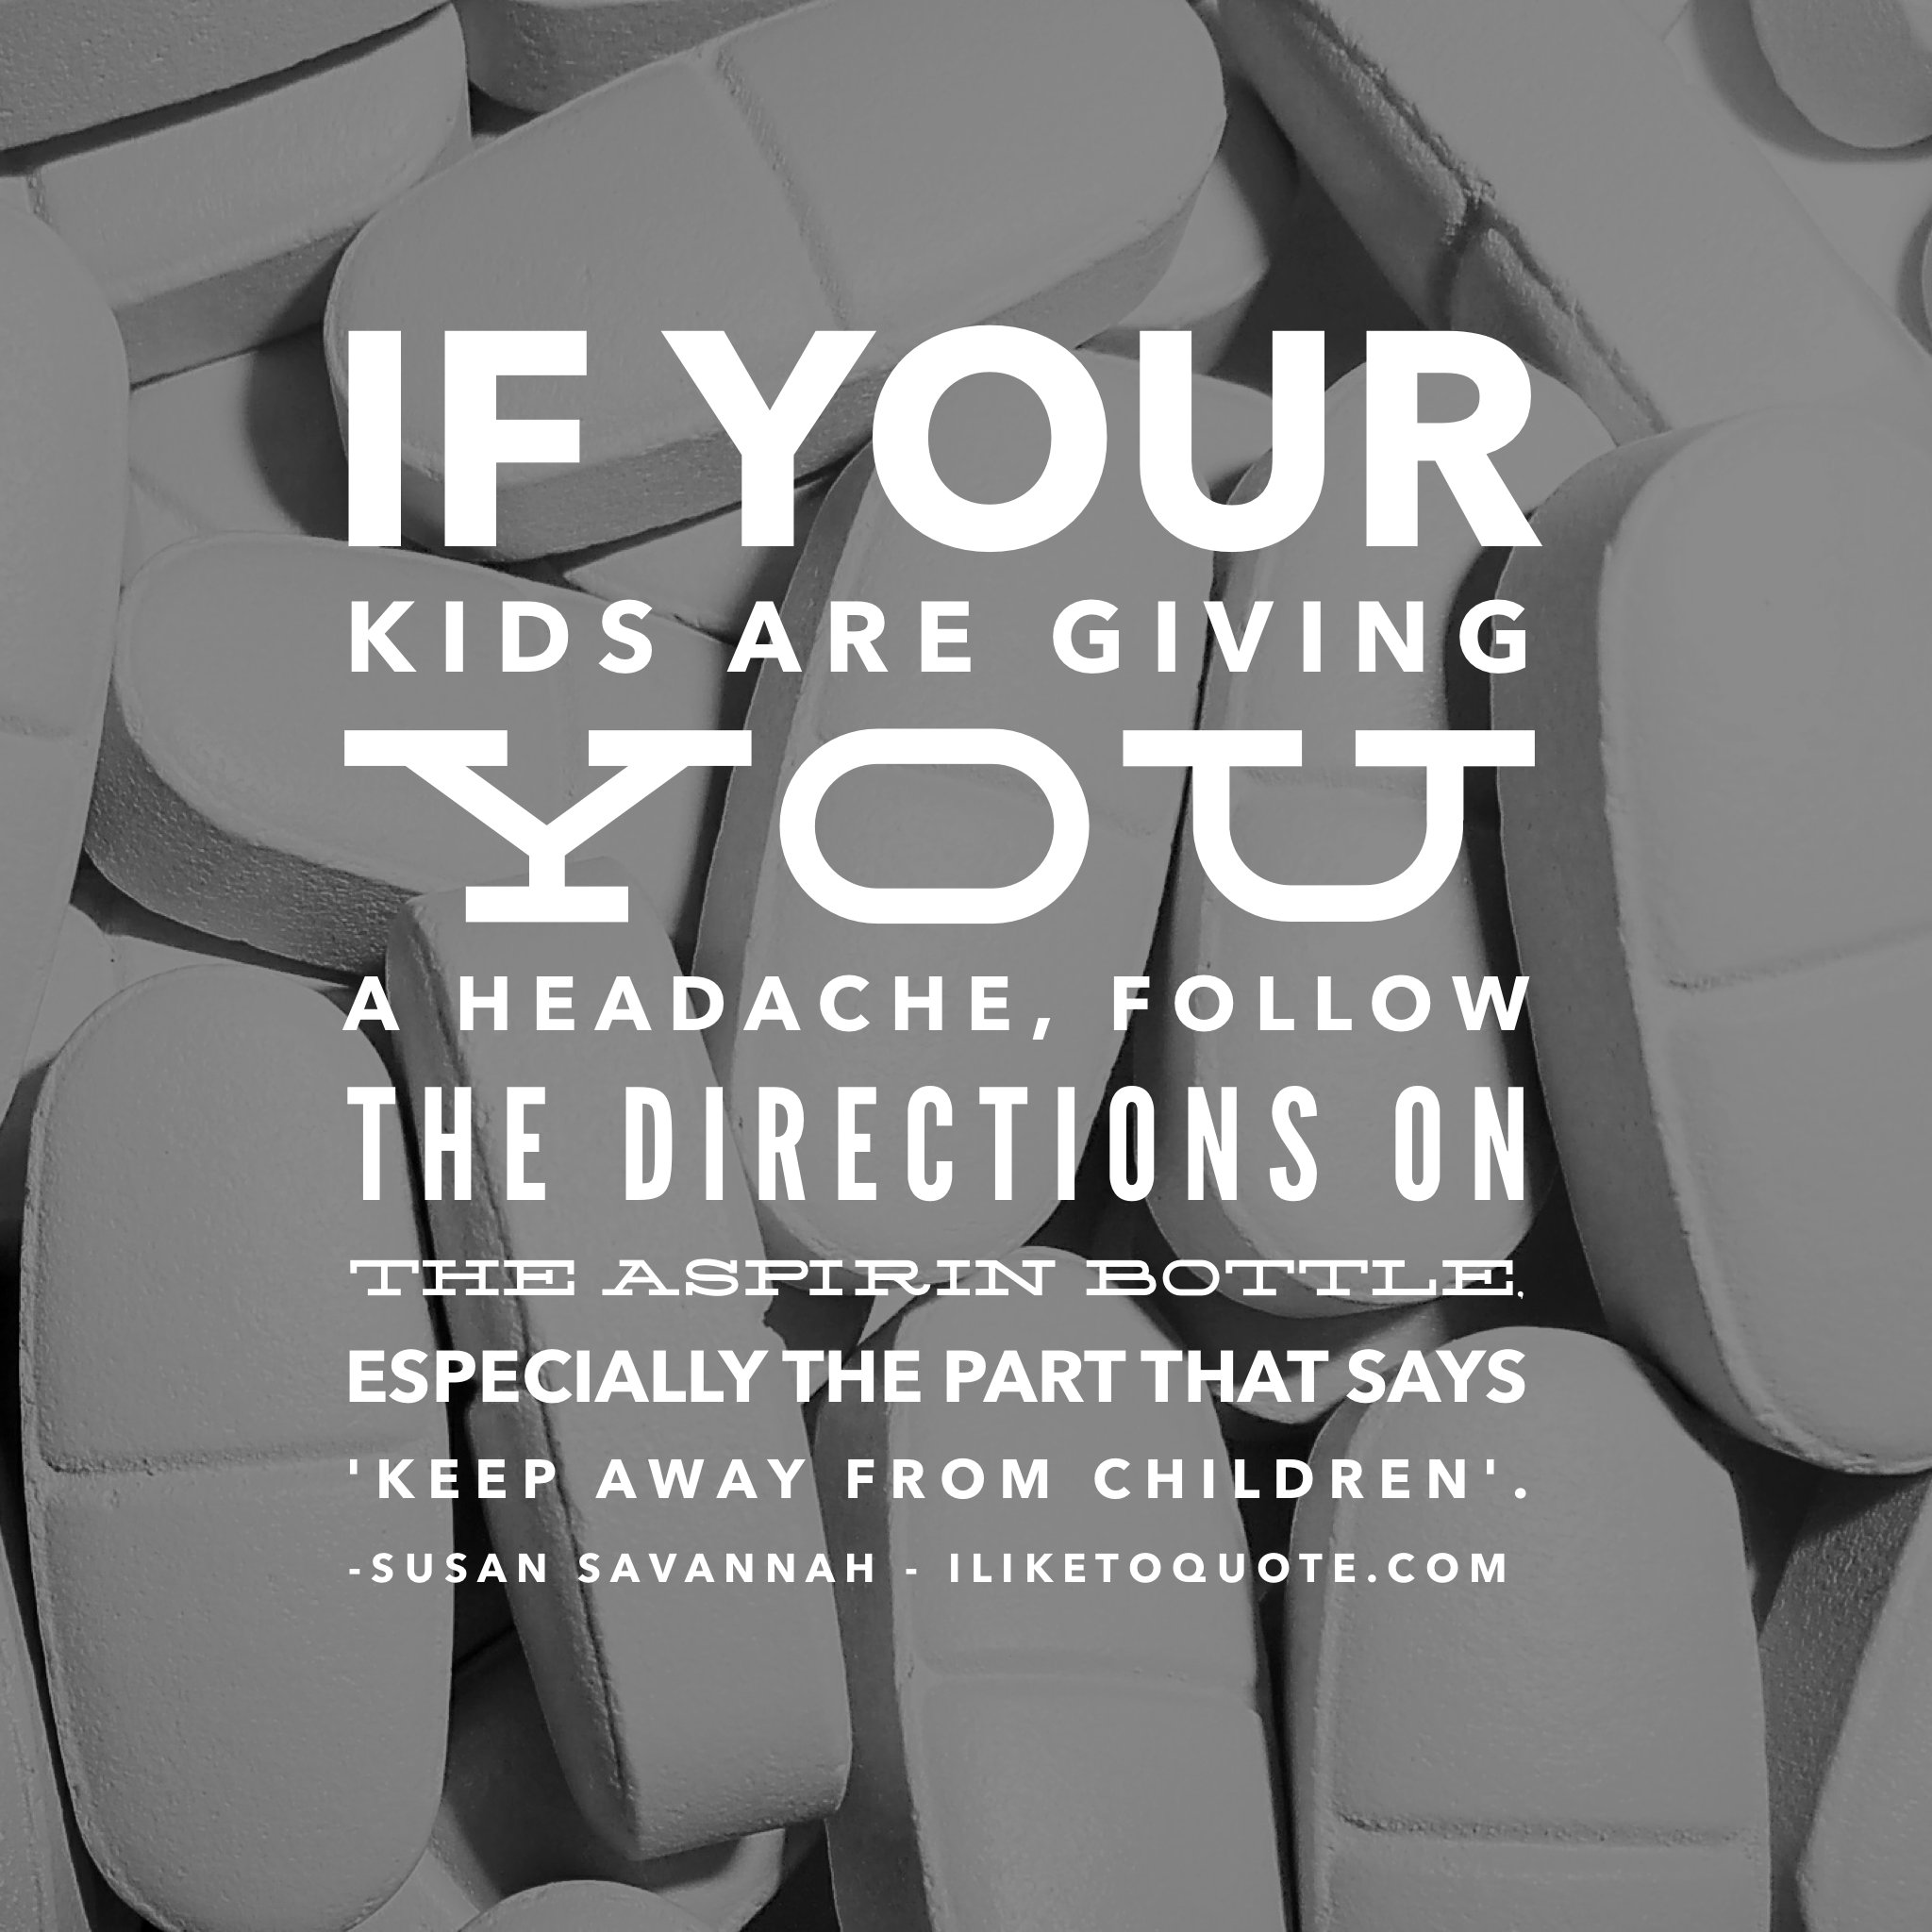 If your kids are giving you a headache, follow the directions on the aspirin bottle